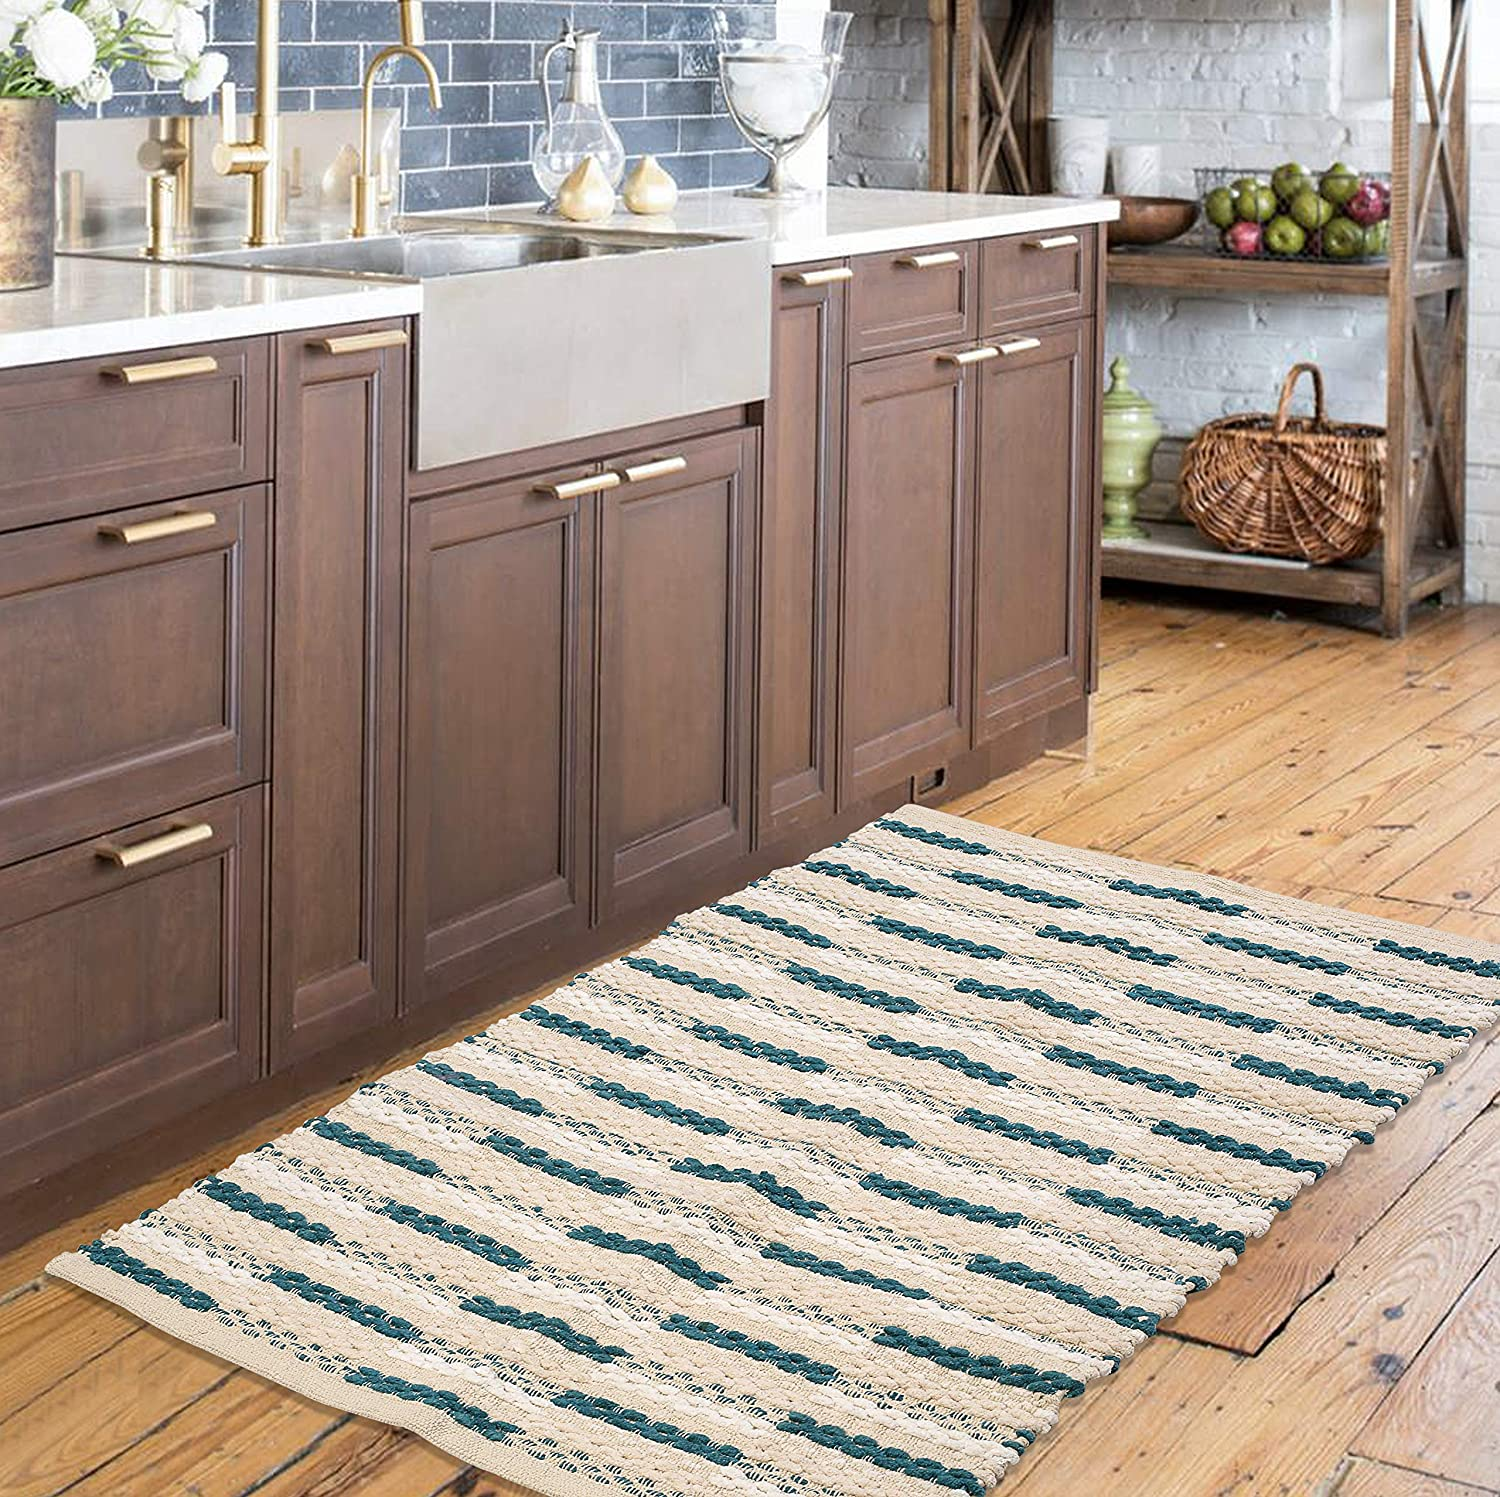 Rugs for Bedroom in Chain Stitch Style 24x36 inch Teal , Farmhouse Kitchen Rugs,Rugs for Living Room,Kitchen Rugs, Entryway Rugs, Cotton Woven Rugs,Absorbent Rugs,Area Rugs